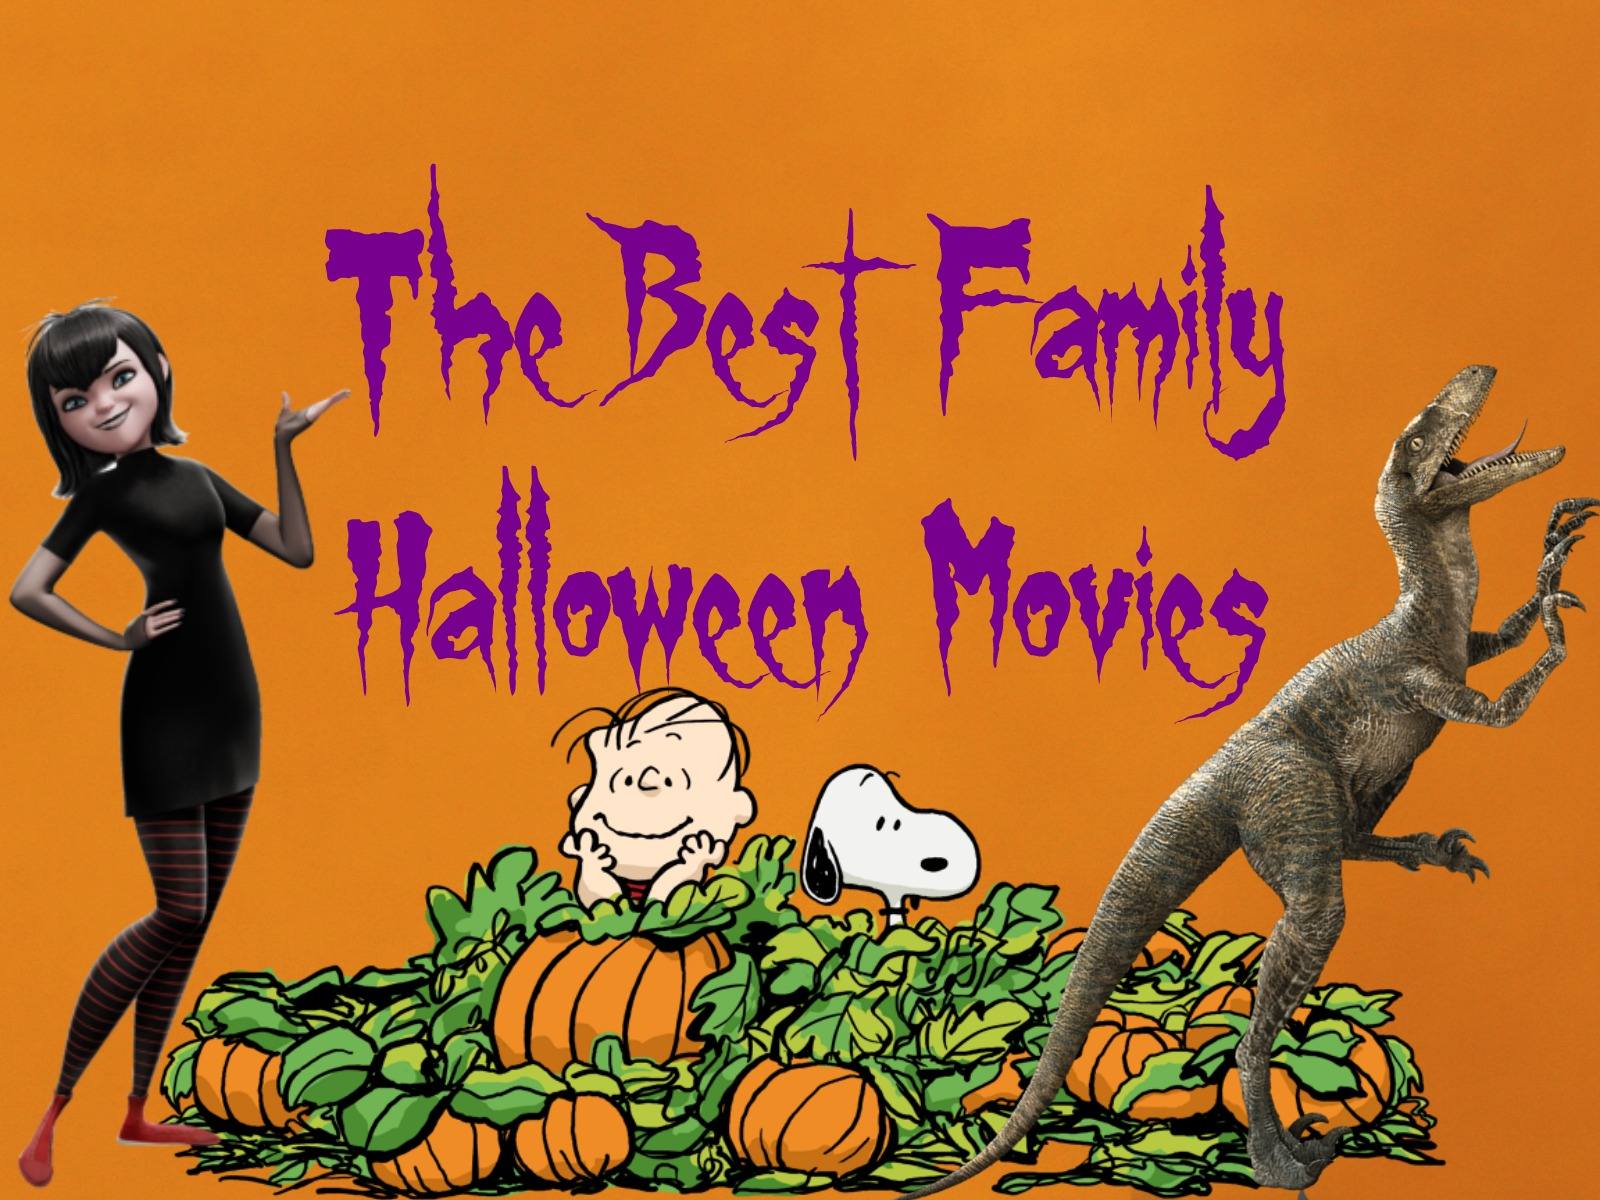 The Best Family Halloween Movies